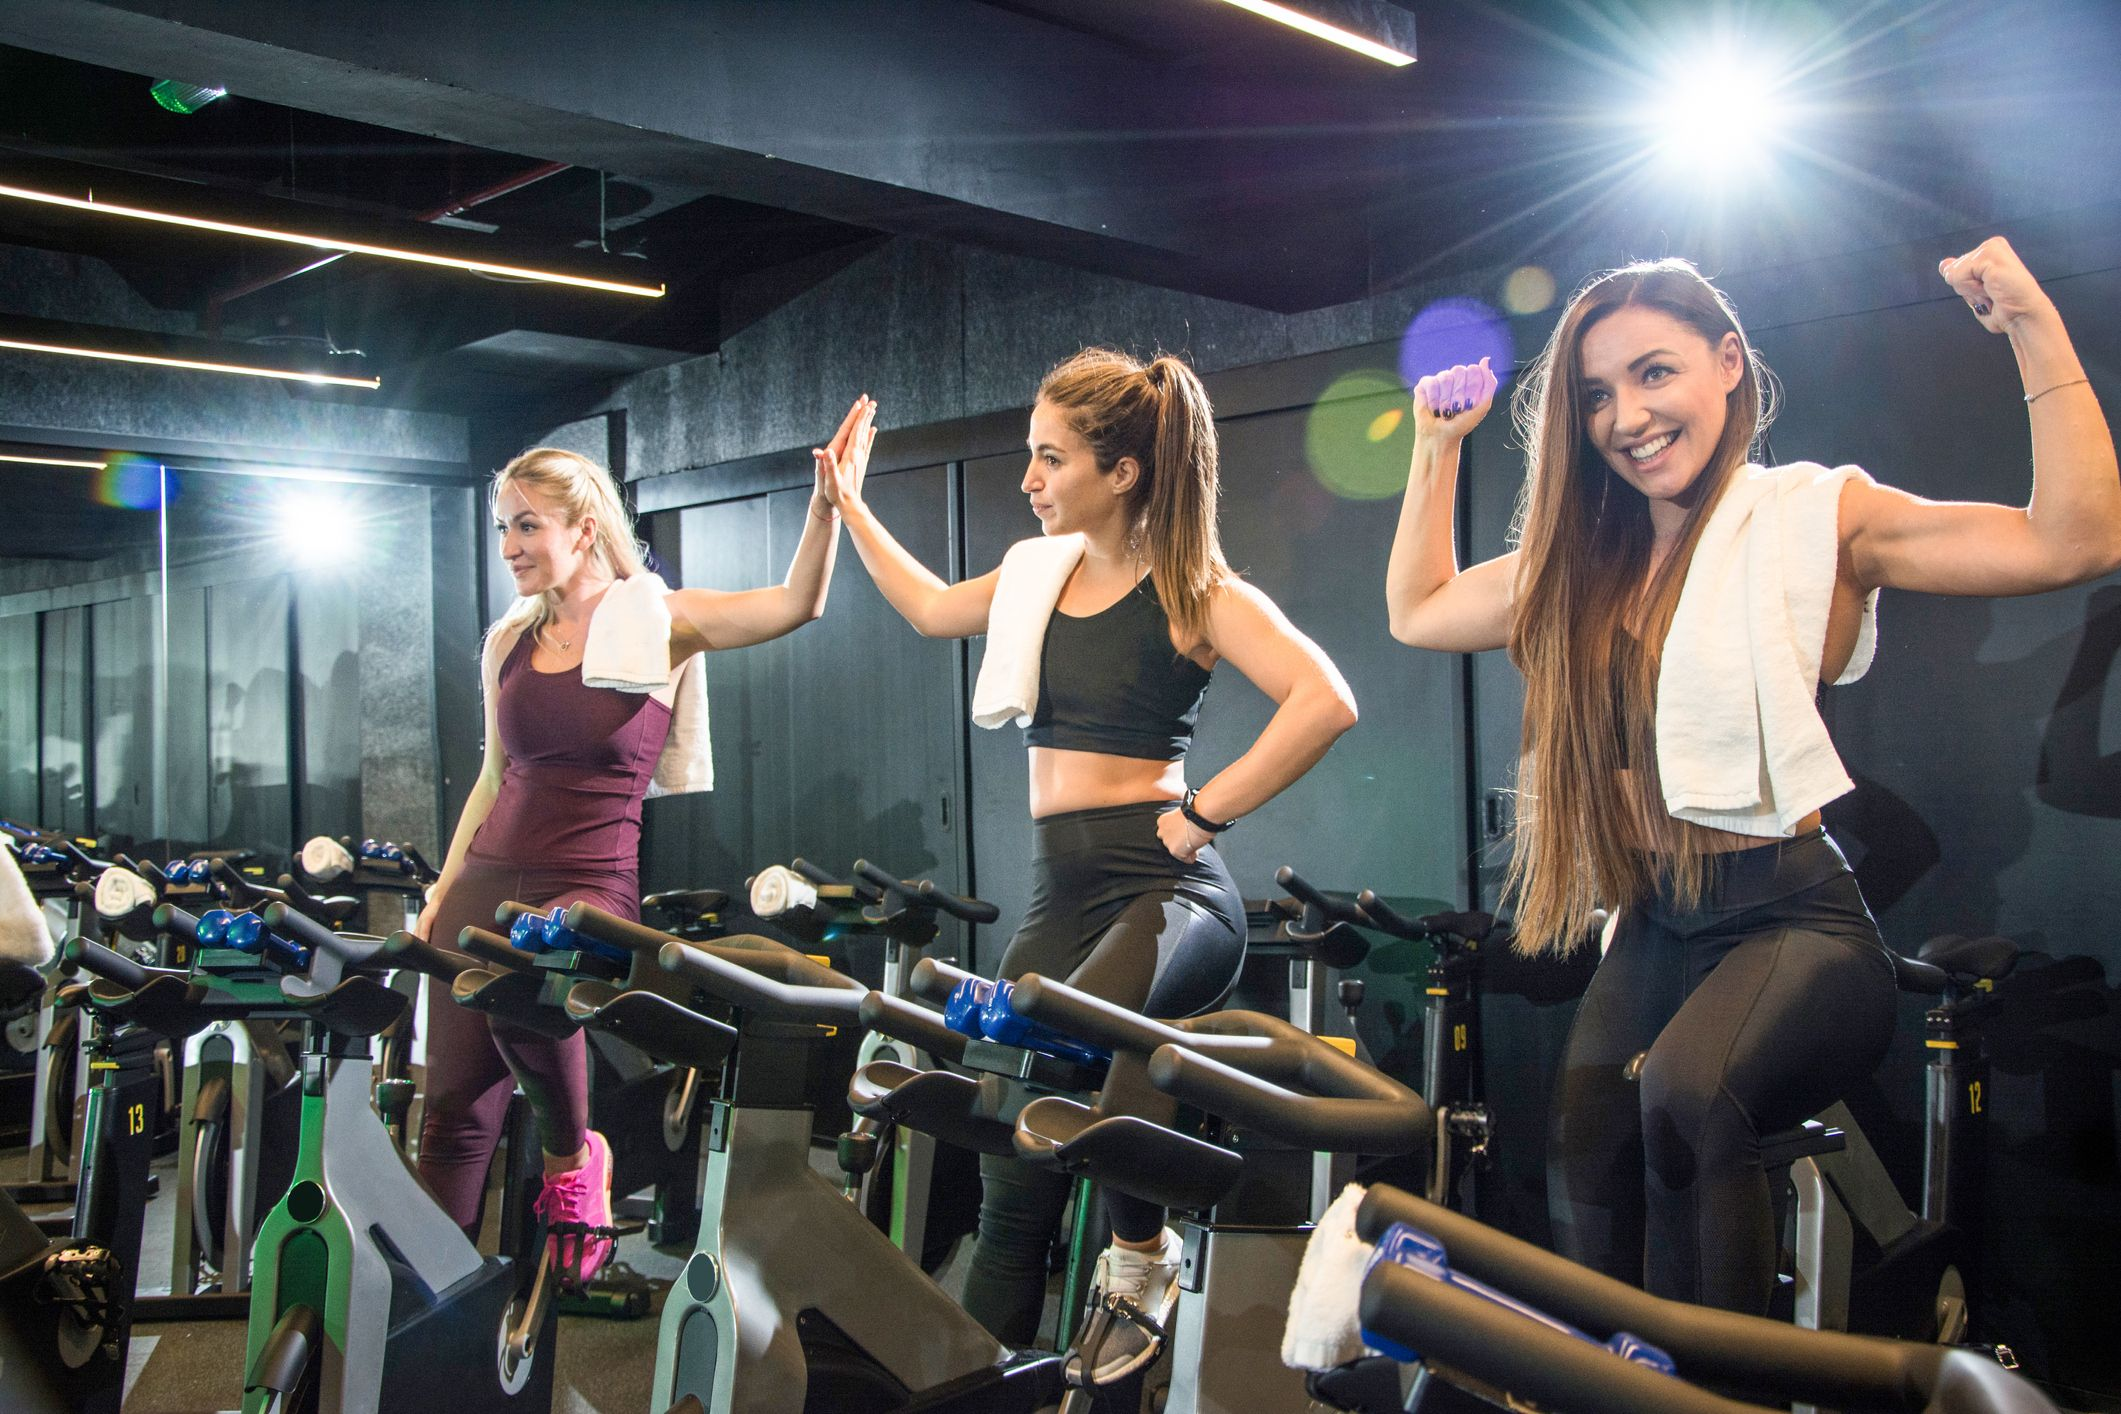 We Tried Spinning For 3 Weeks And This Is What Happened To Our Bodies